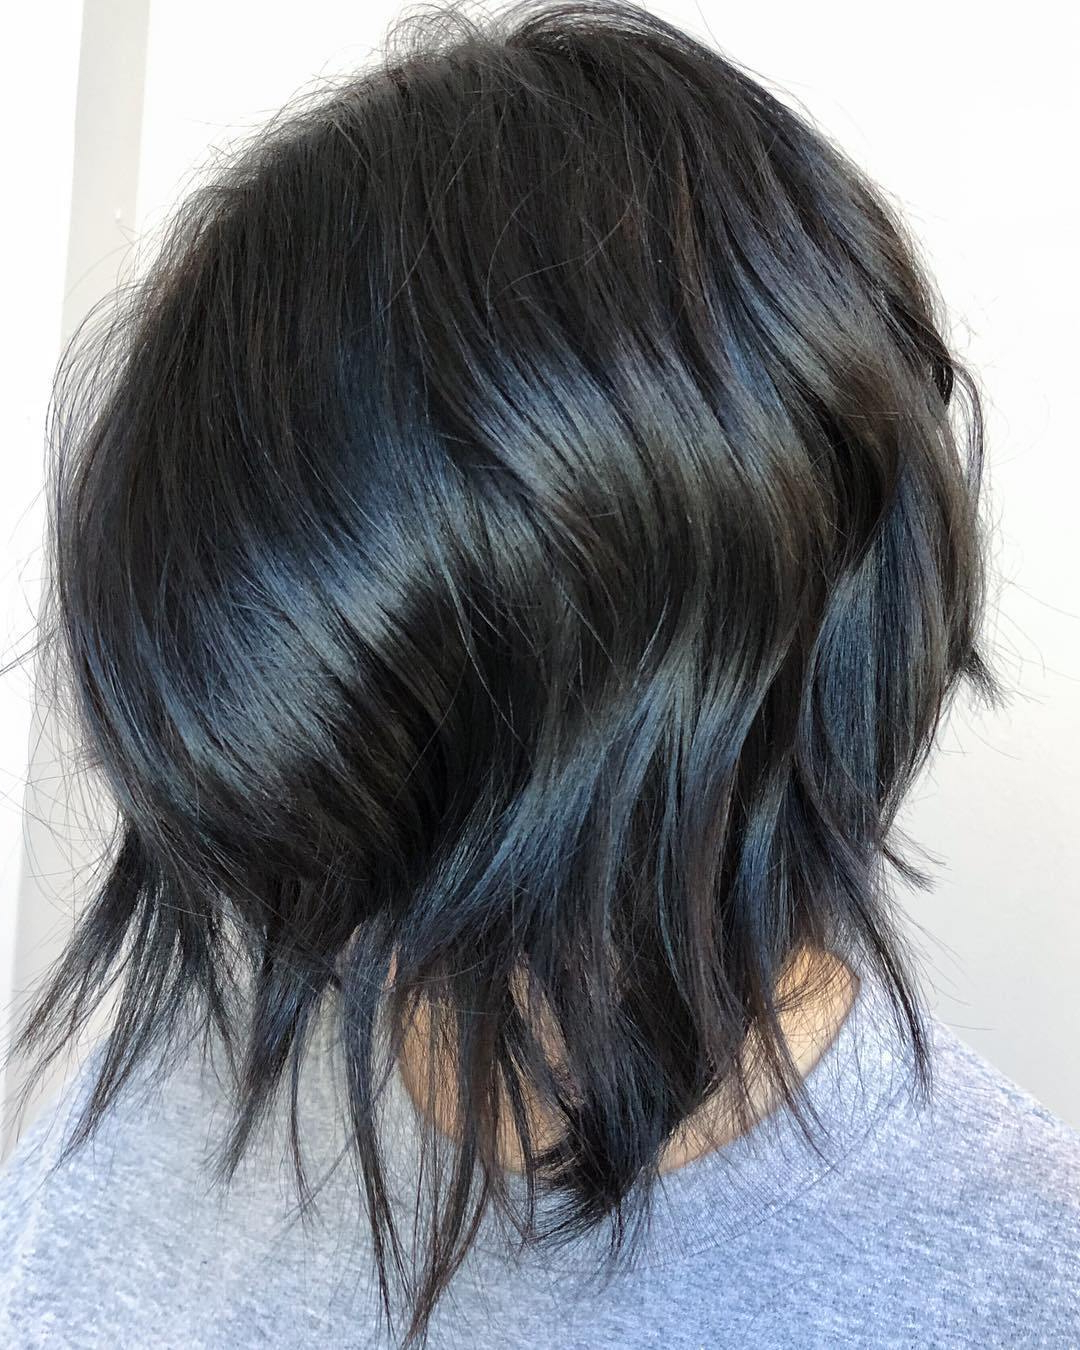 50 Inverted Bob Haircuts That Are Uber Fashionable – Hair With Steeply Angled Razored Asymmetrical Bob Hairstyles (View 18 of 20)